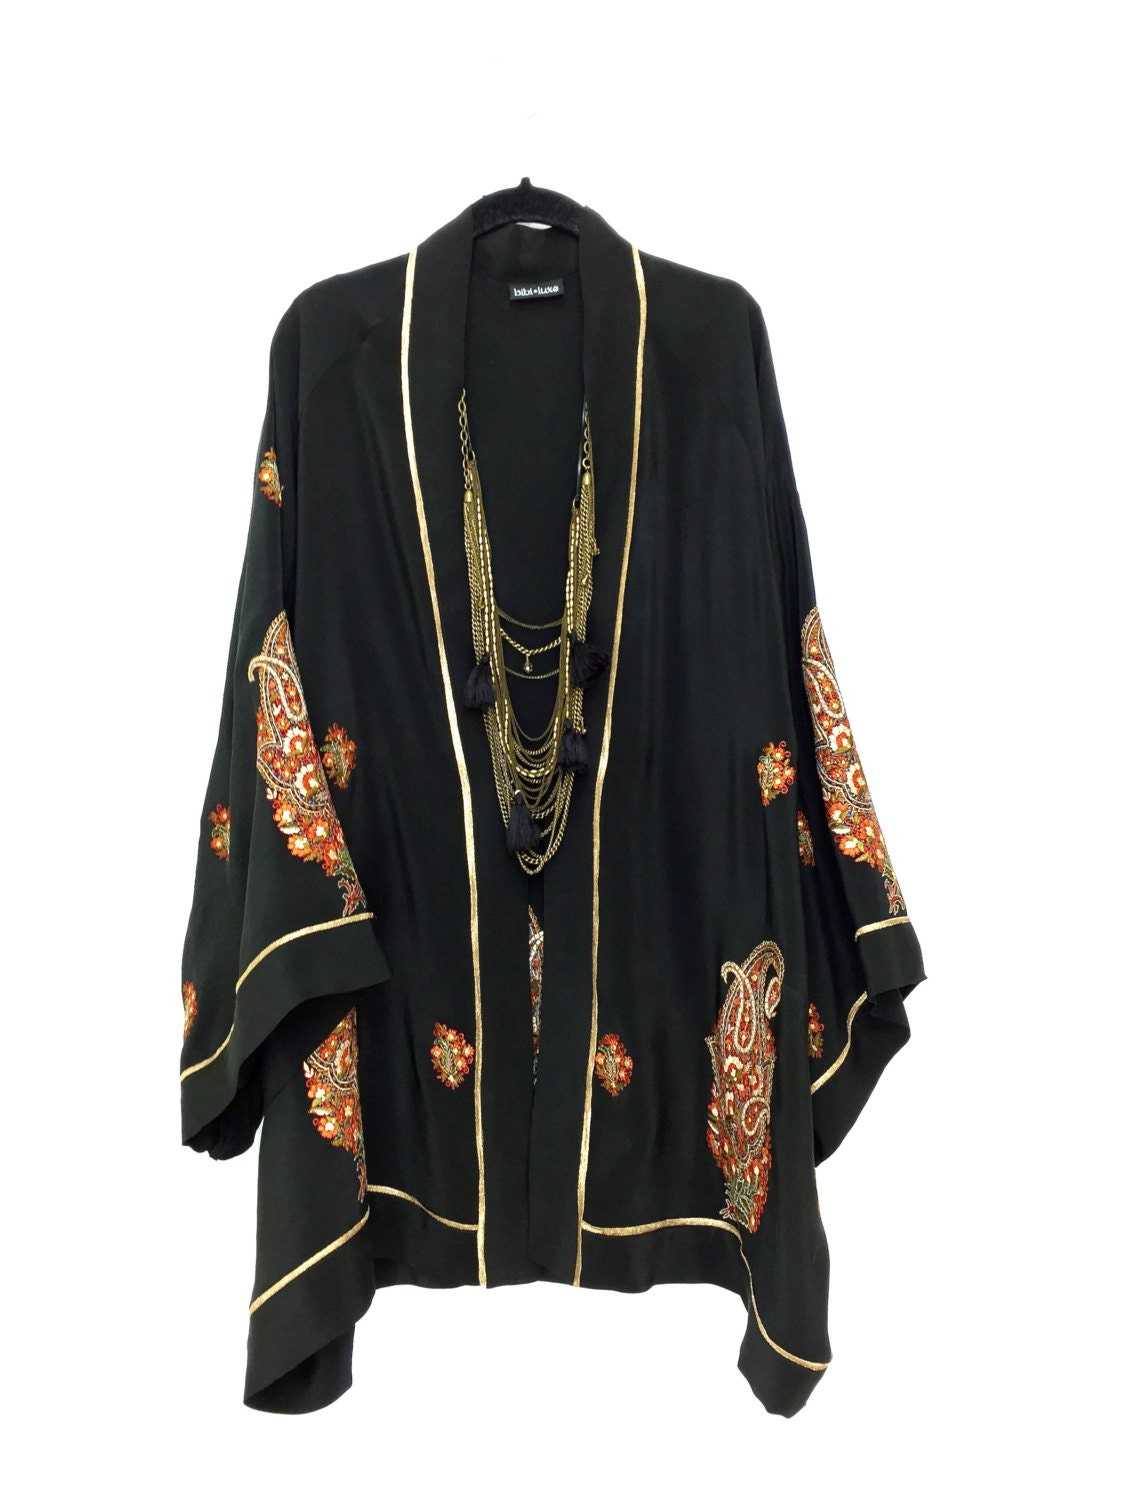 Black Silk Kimono Jacket Beach Cover Up With An Indian